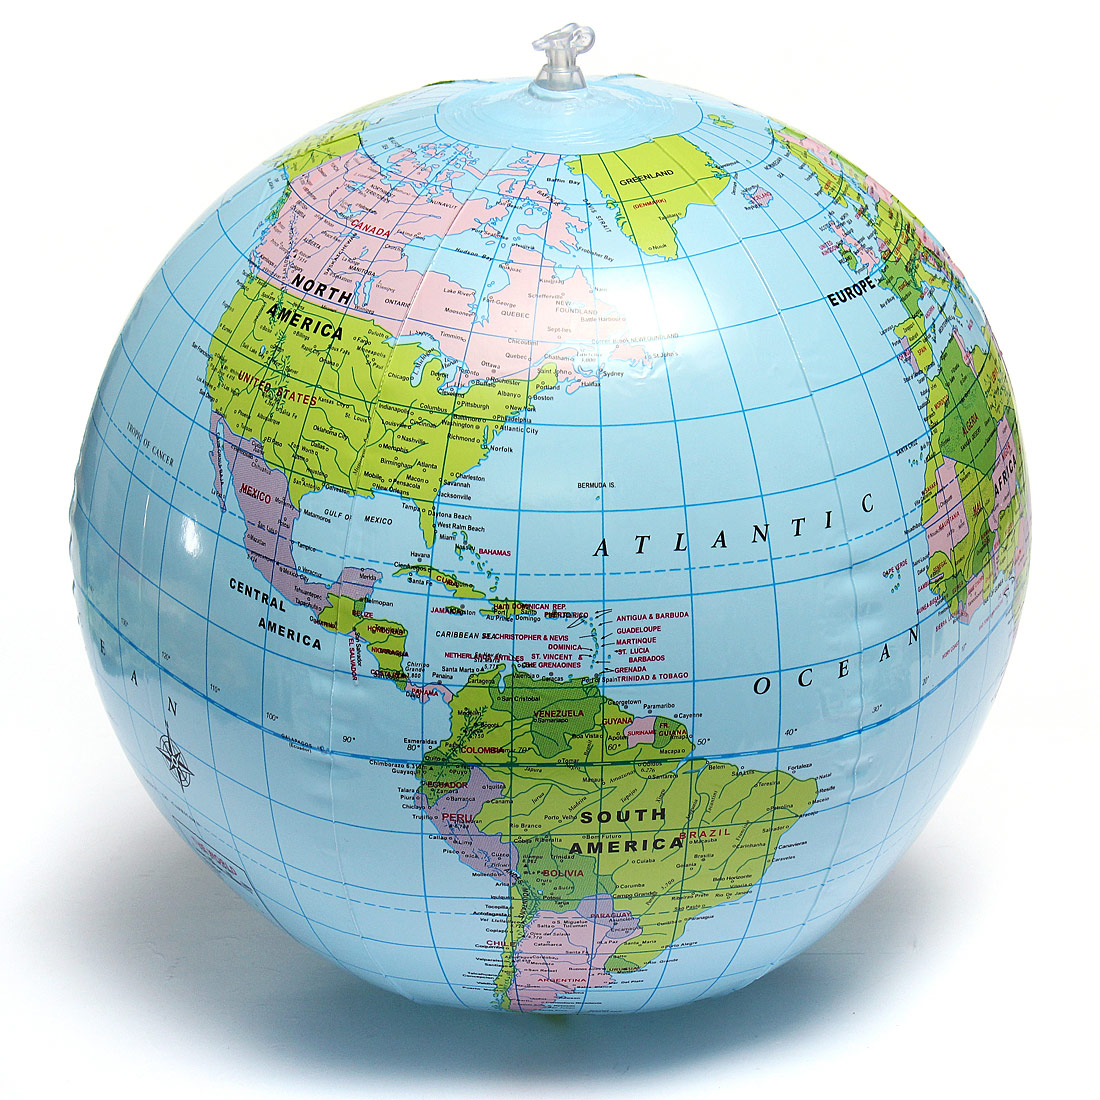 Pvc inflatable blow up world globe 38cm earth atlas ball map detail image gumiabroncs Image collections